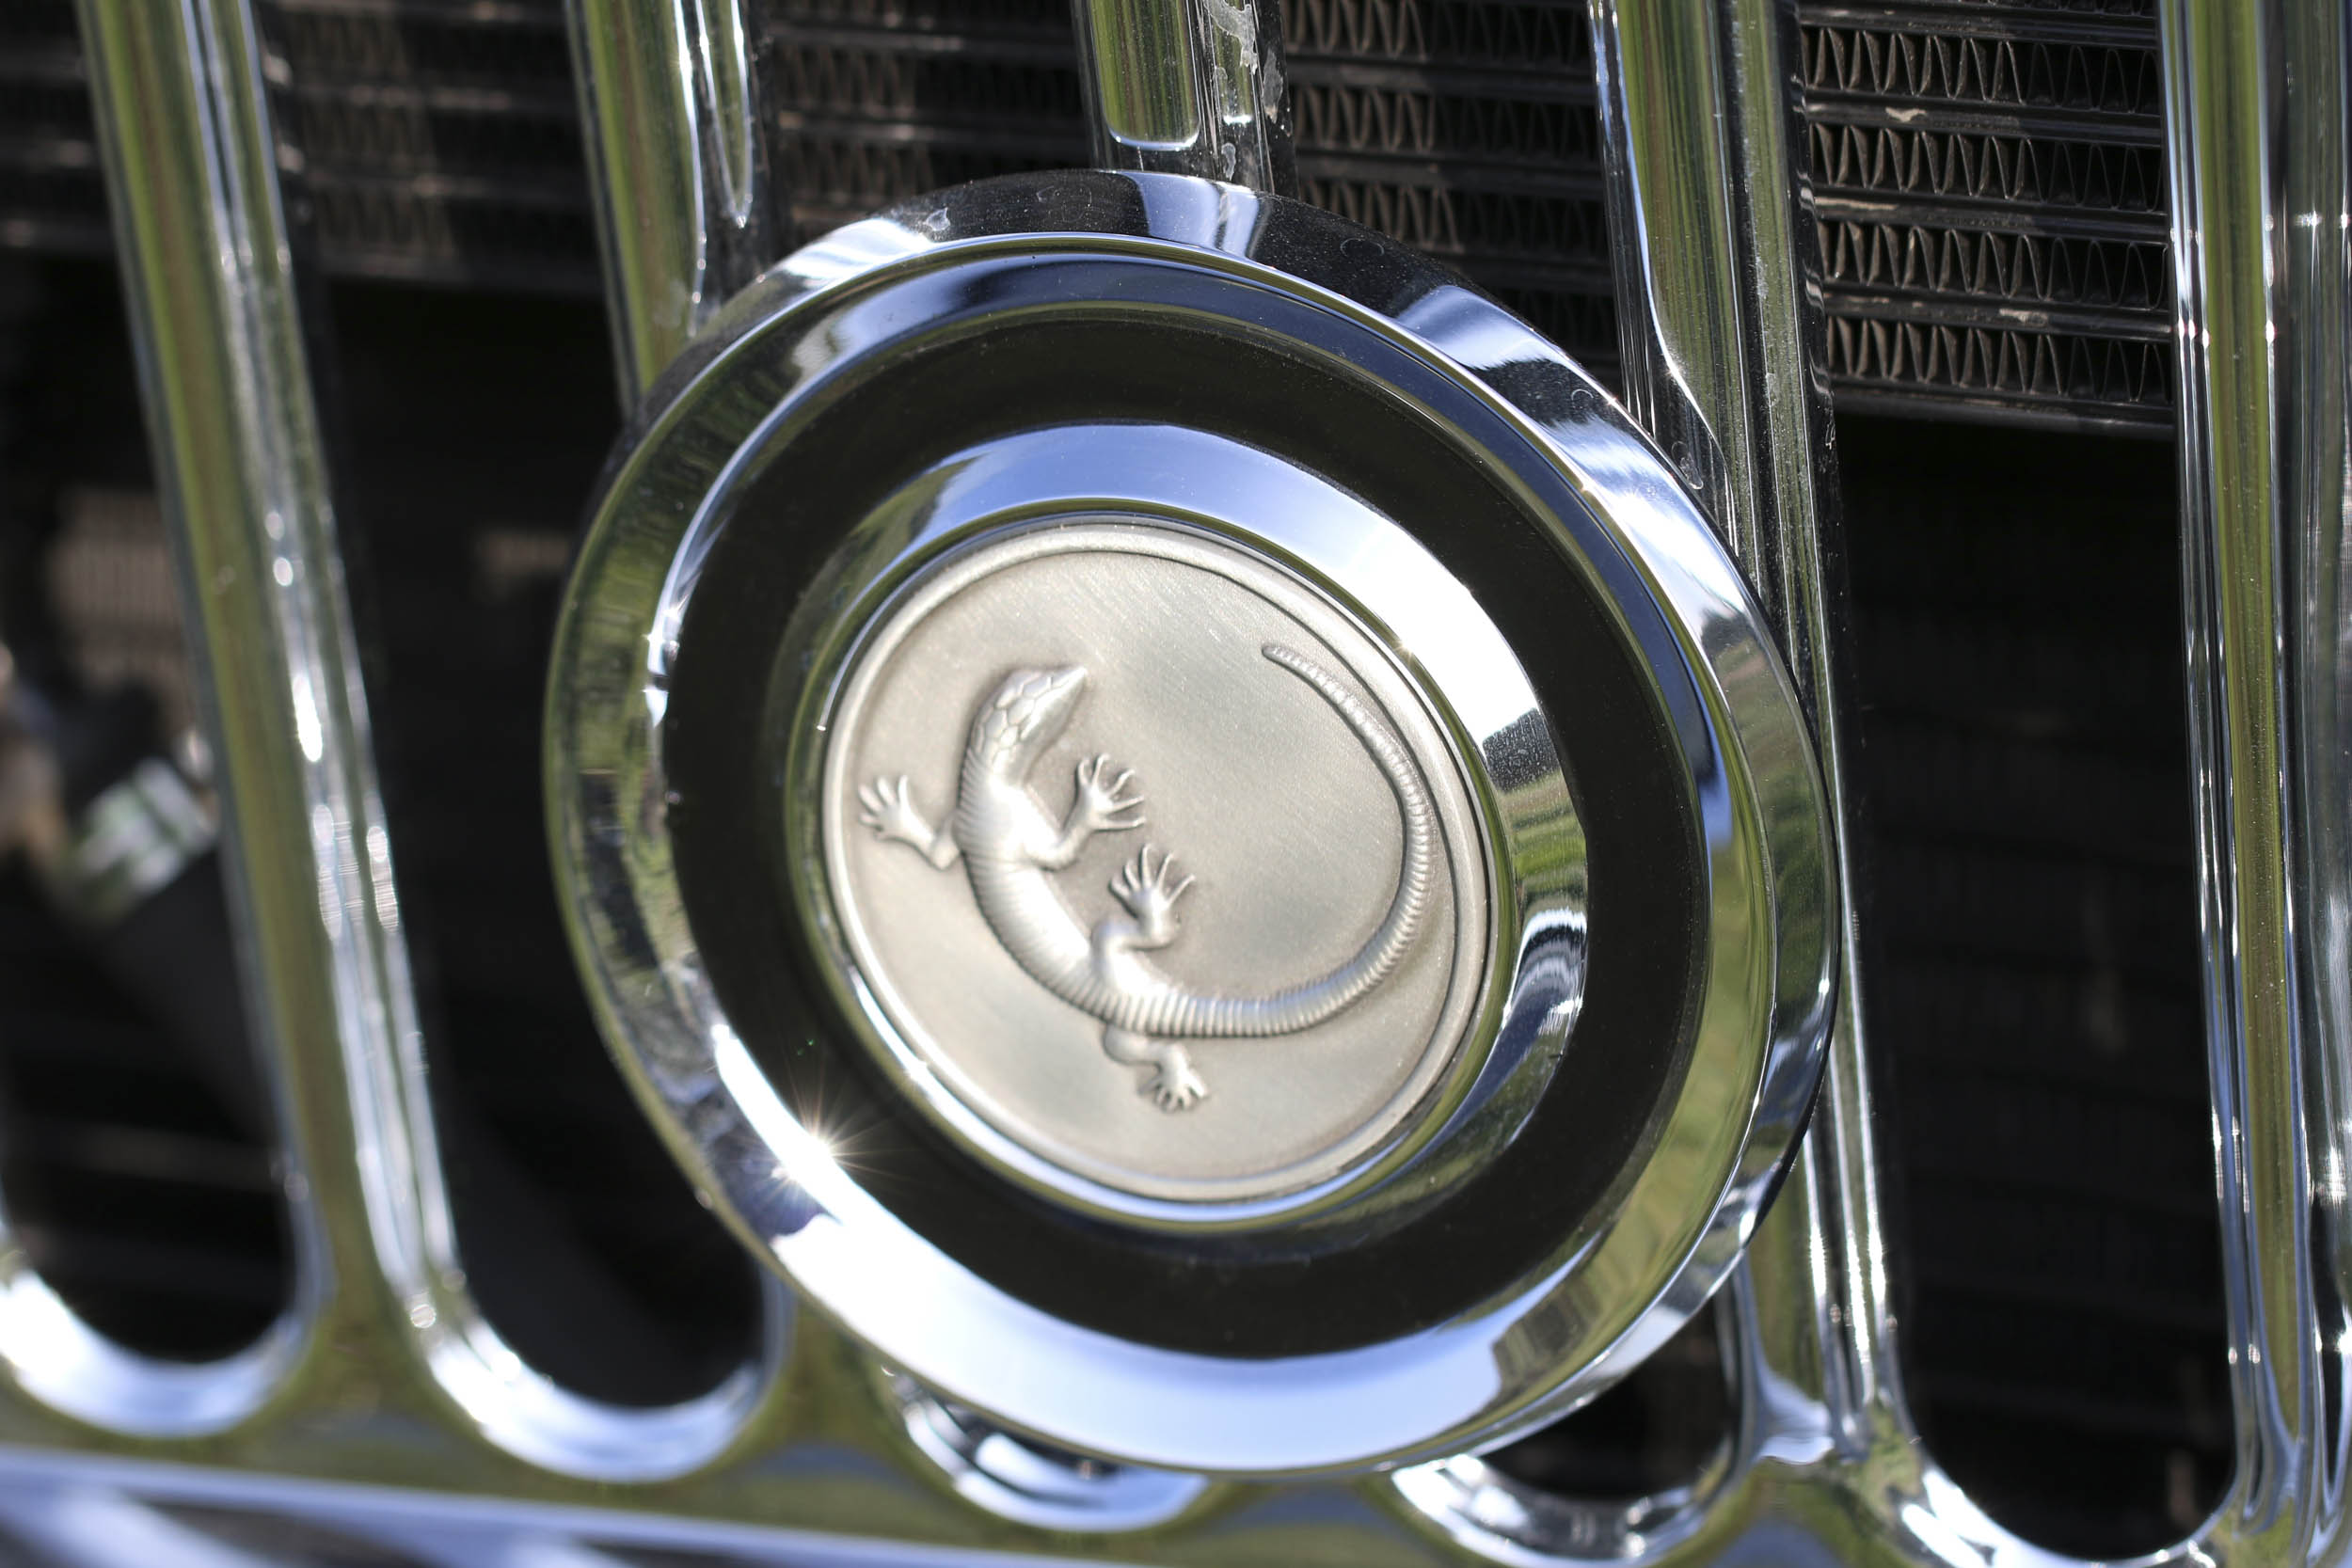 ICON Wagoneer front badge detail